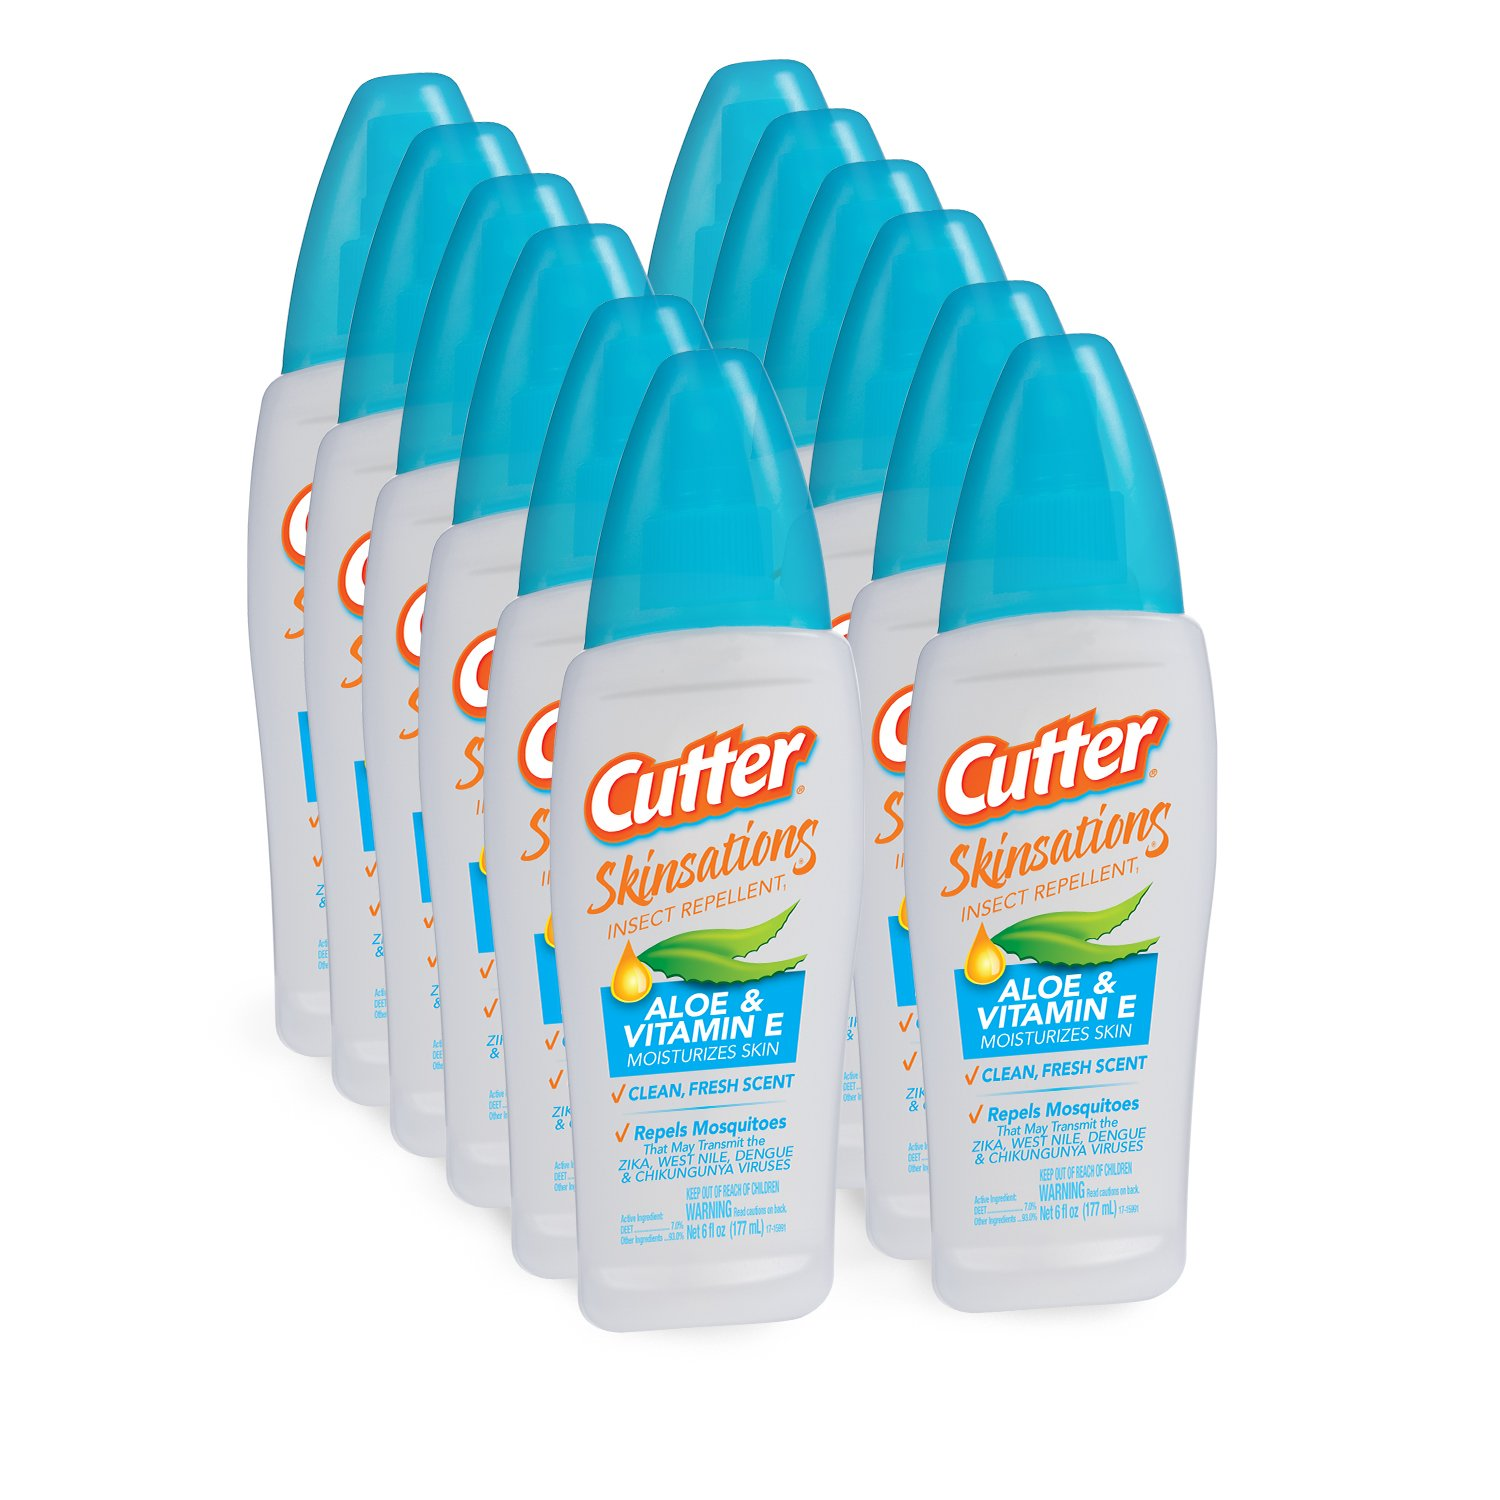 Cutter Skinsations Insect Repellent Pump Spray, 6-Ounce, 12-Pack by Cutter